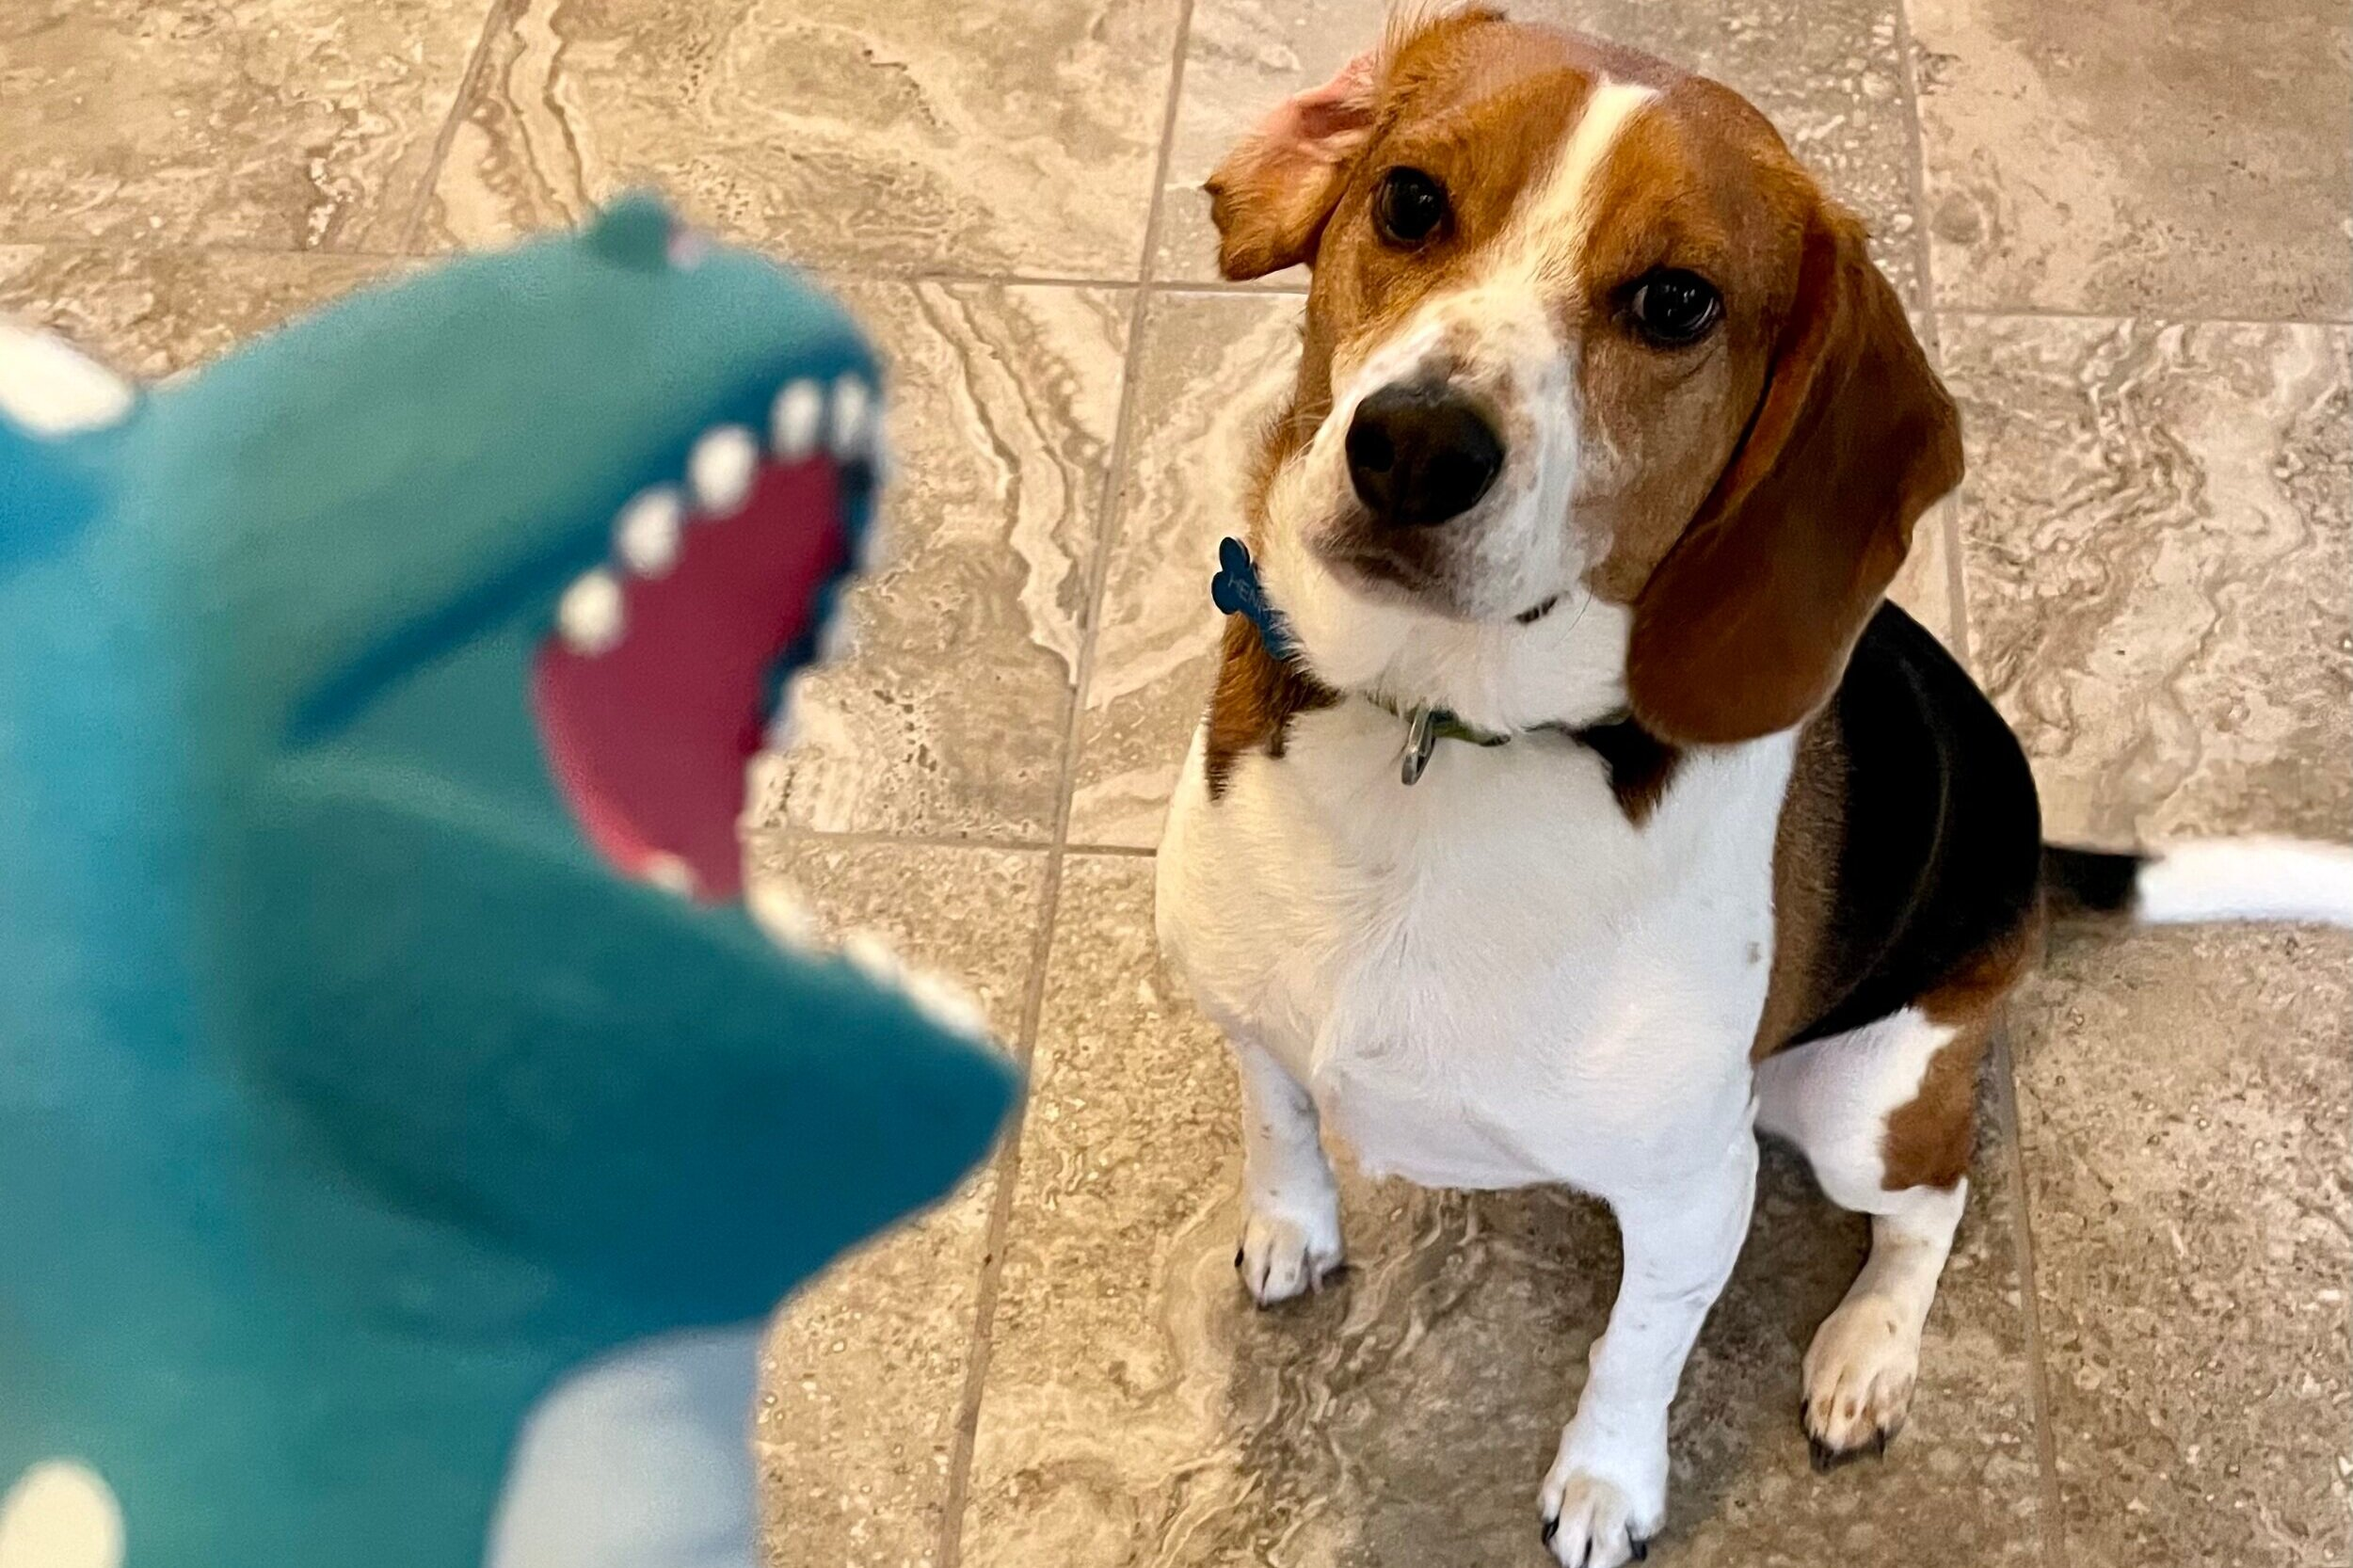 A picture of my beagle Henry waiting for his toy we purchased from Chewy.com